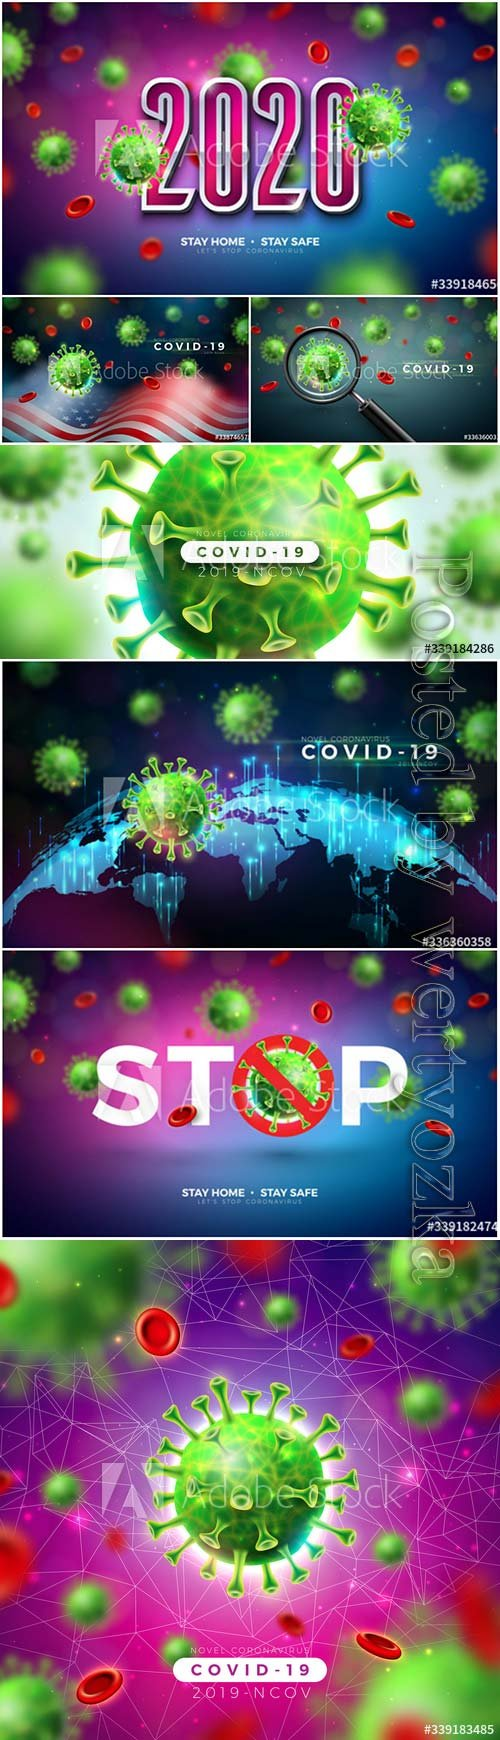 Stay home, stop coronavirus vector design